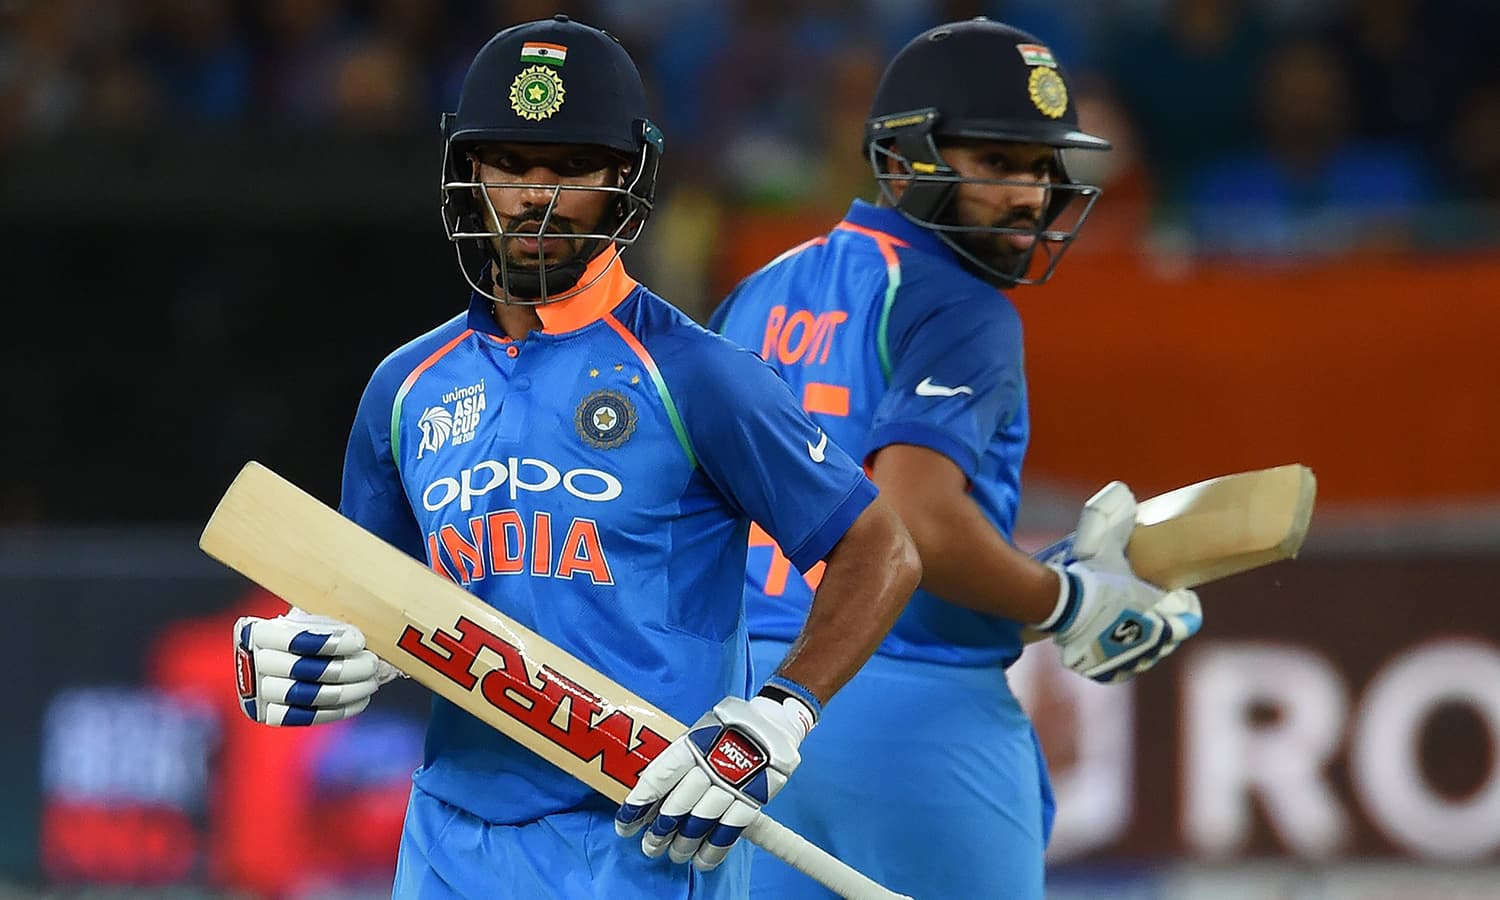 Indian cricket team captain Rohit Sharma (R) and Shikhar Dhawan runs between the wickets. —AFP